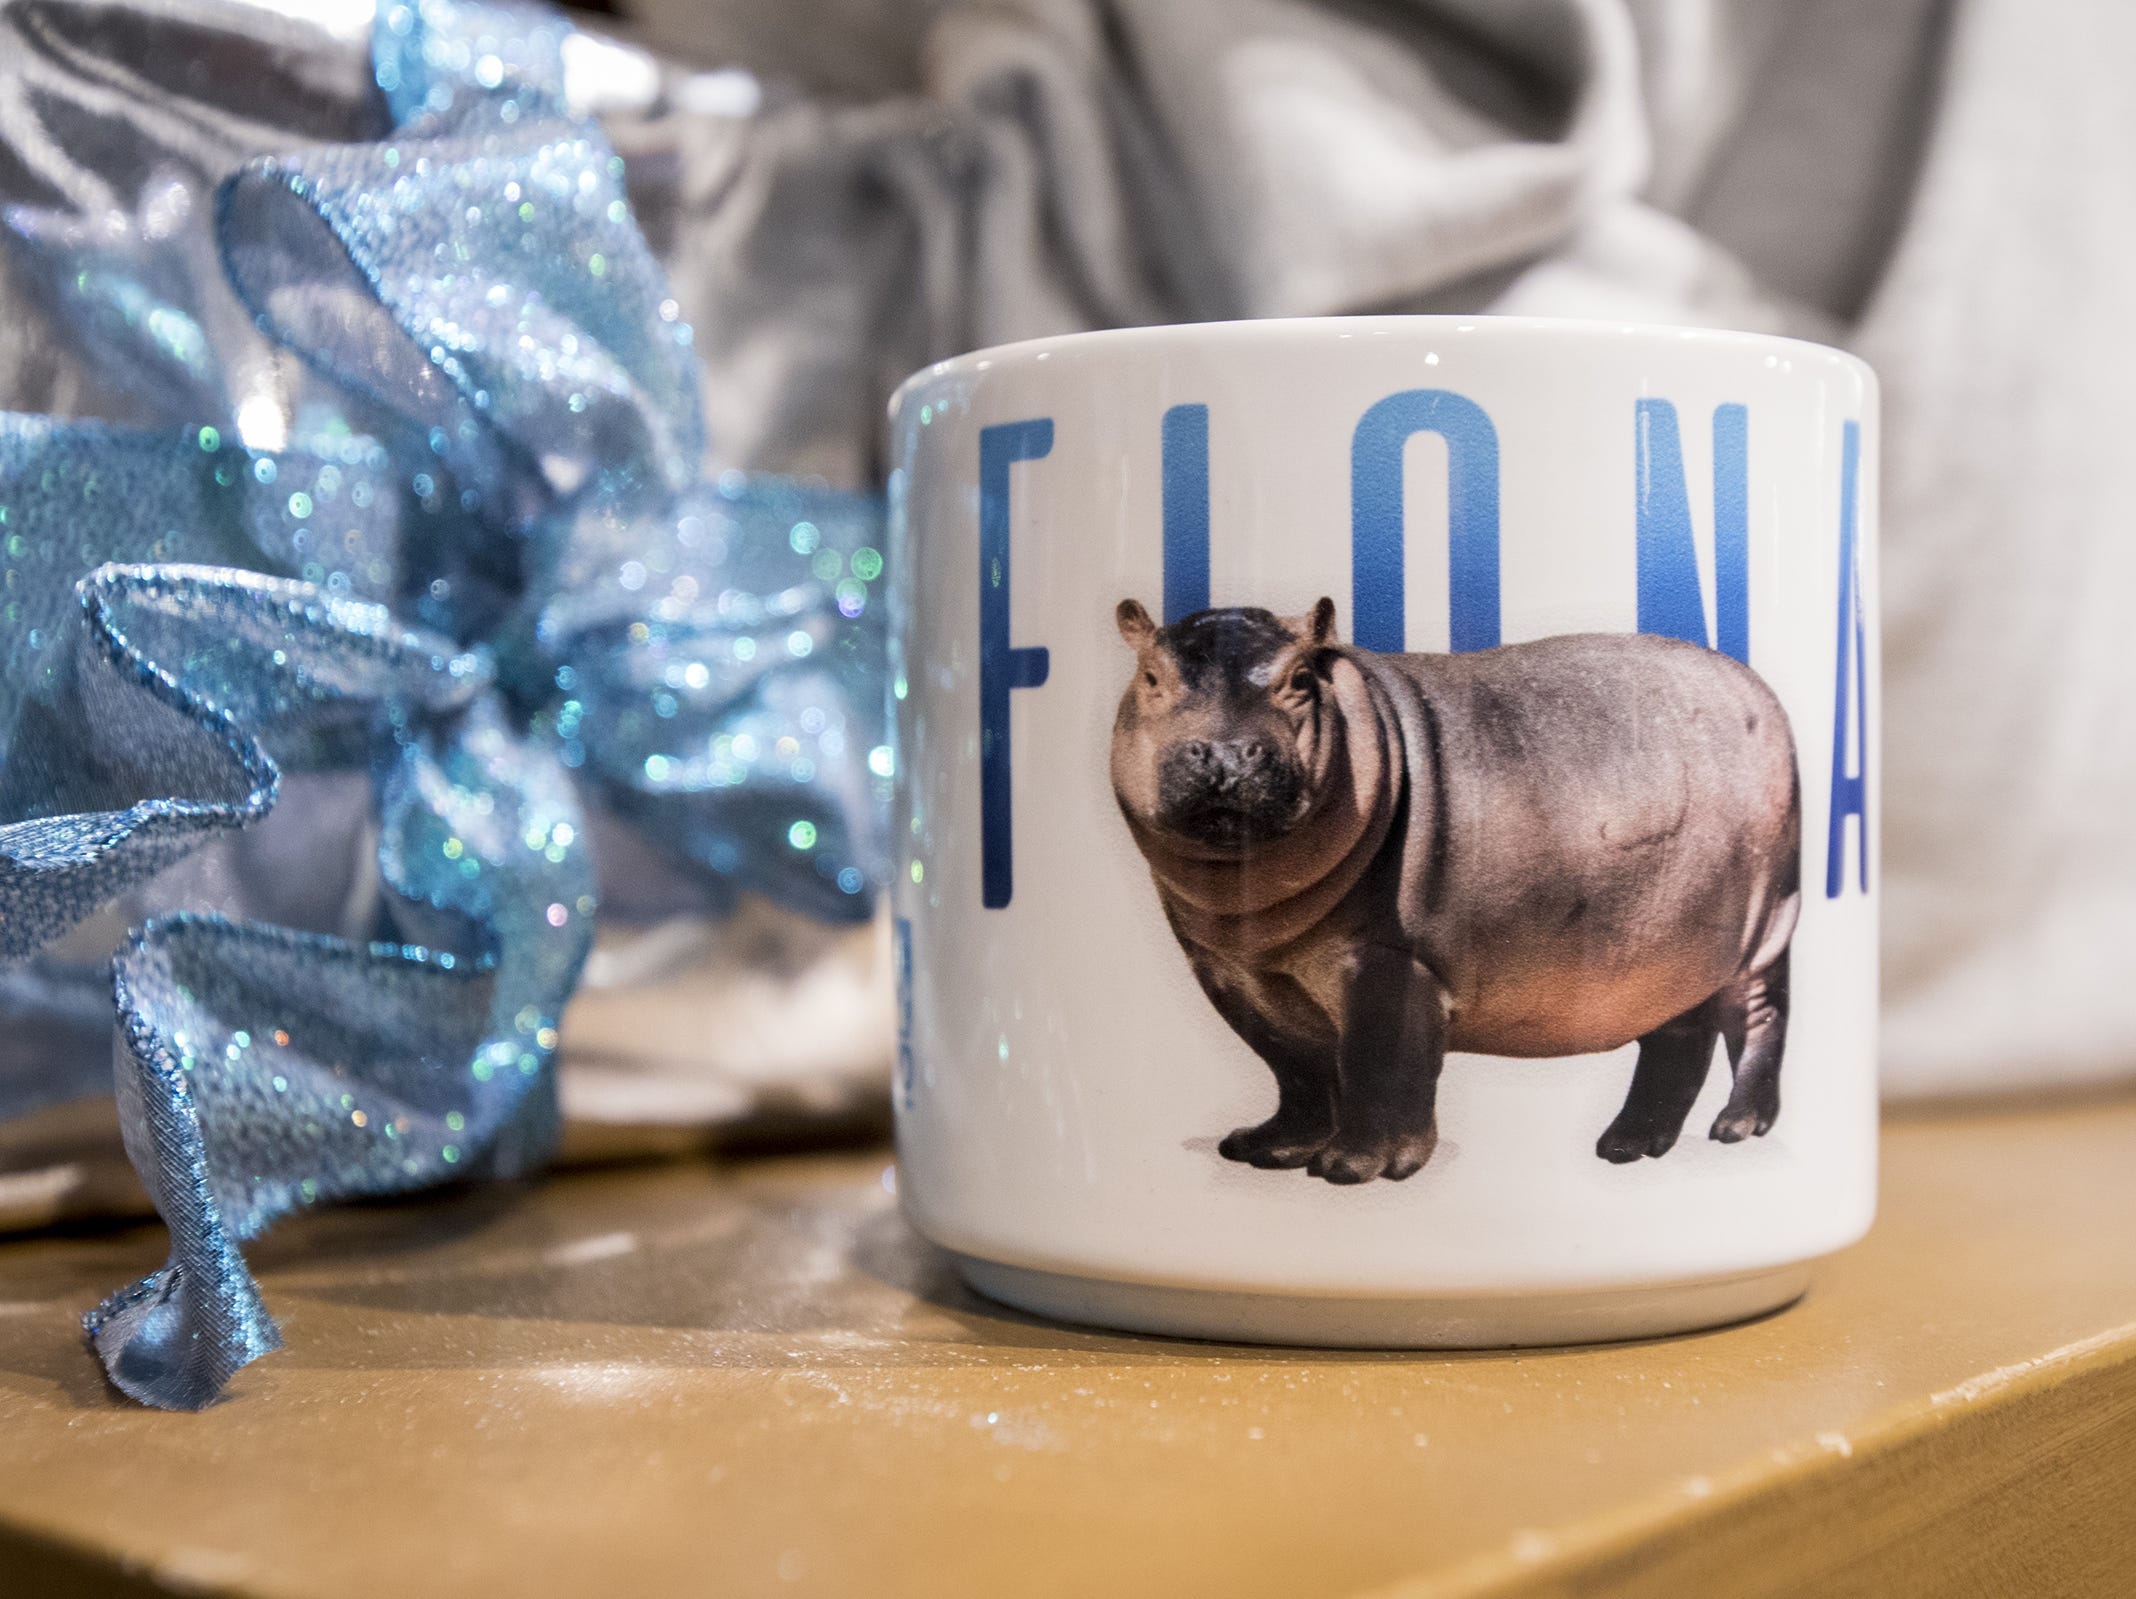 Special Fiona-themed items are for sale during the Cincinnati Zoo's Fiona 1k walk in honor of the beloved hippo's 1,000-pound milestone Saturday, December 1, 2018 in Cincinnati, Ohio.